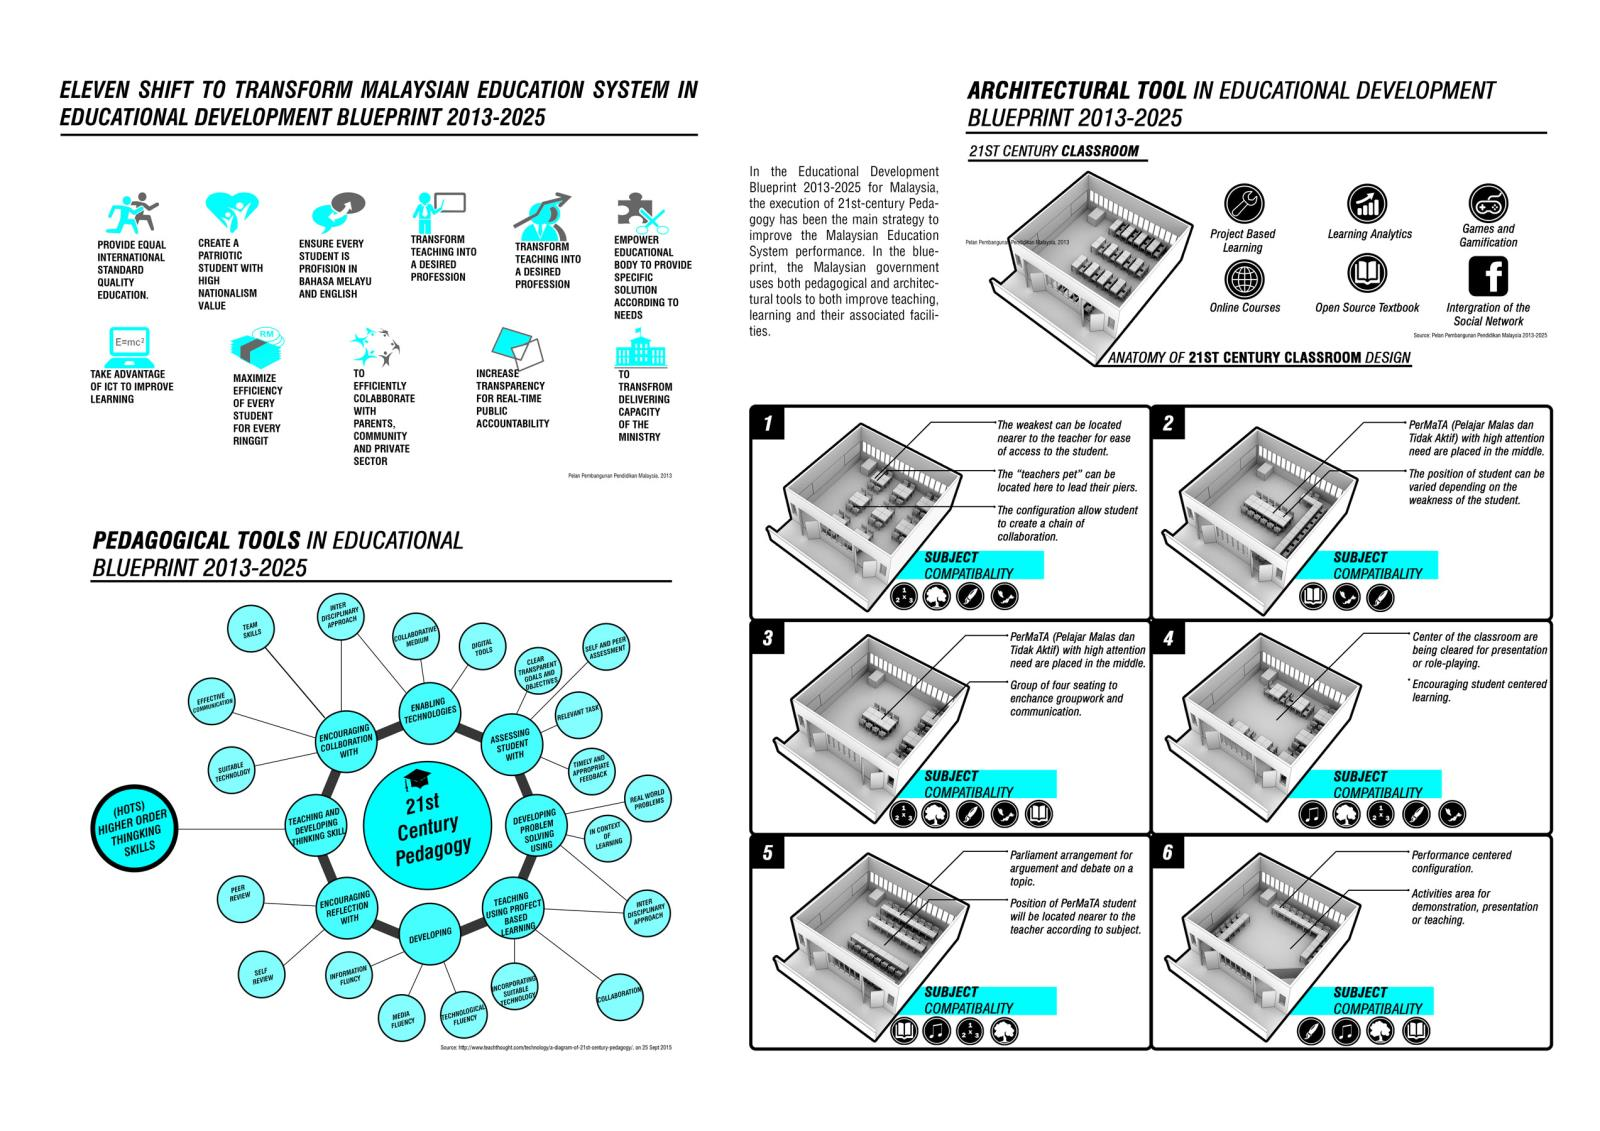 Presidents medals proposed built pedagogy of the 21st century of content synopsis of the educational development blueprint 2013 2025 showing the relationship pedagogical and architectural approach of the blueprint malvernweather Choice Image